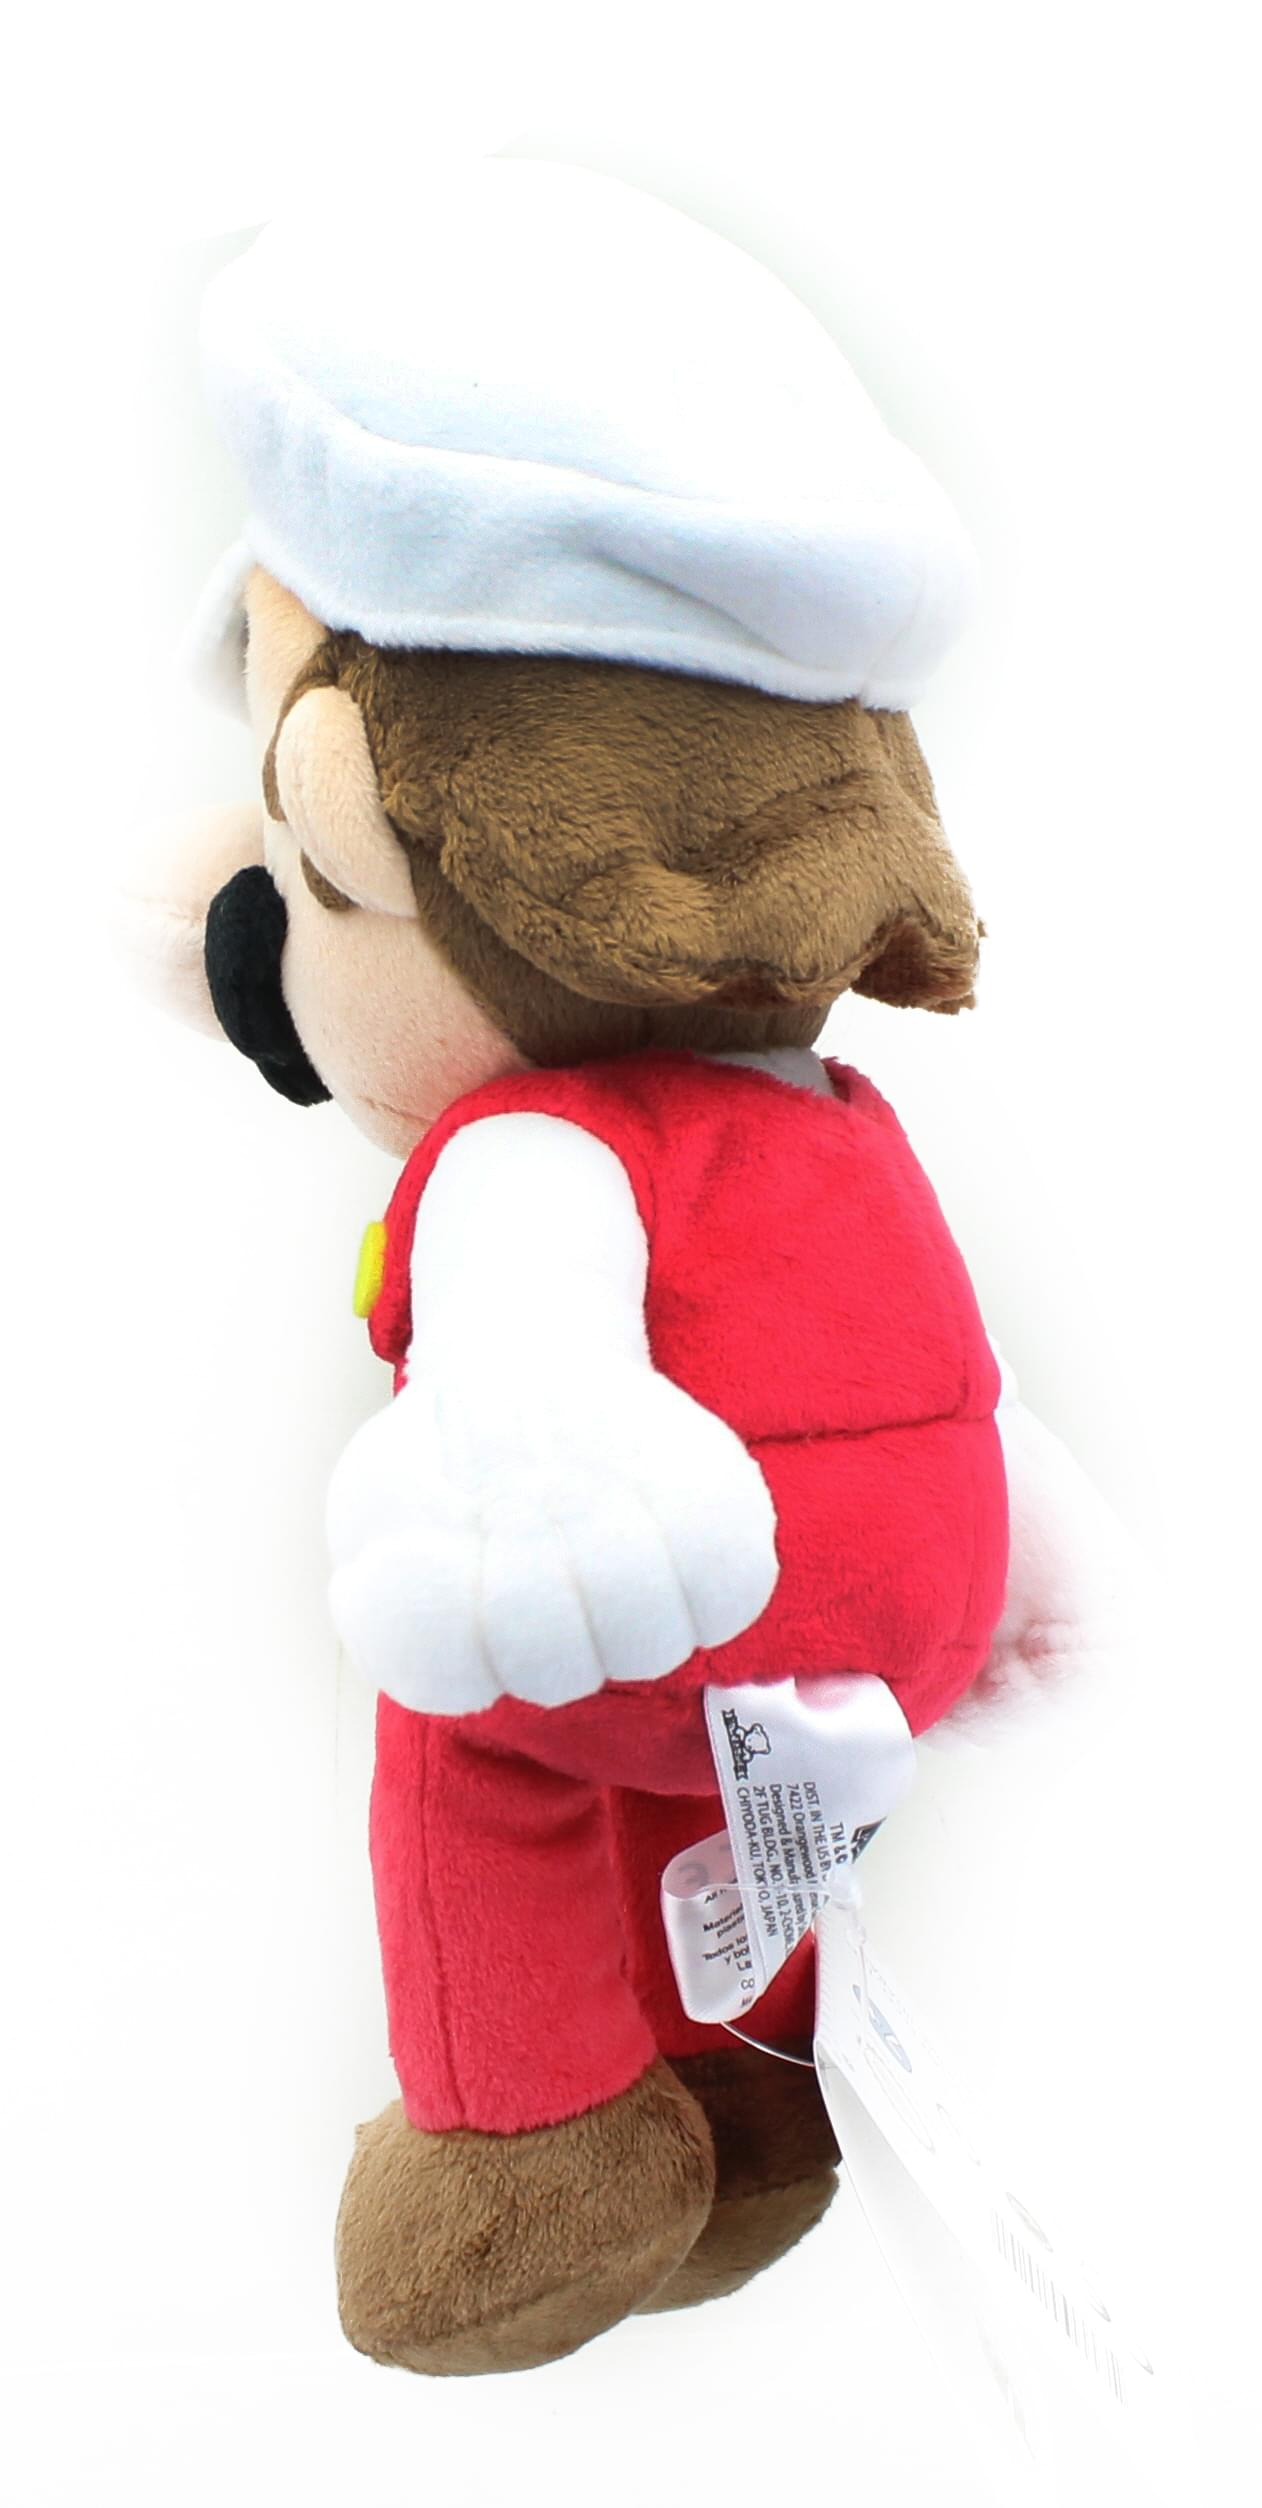 Super Mario All Star Collection 9 5 Inch Plush Fire Mario Free Shi Toynk Toys